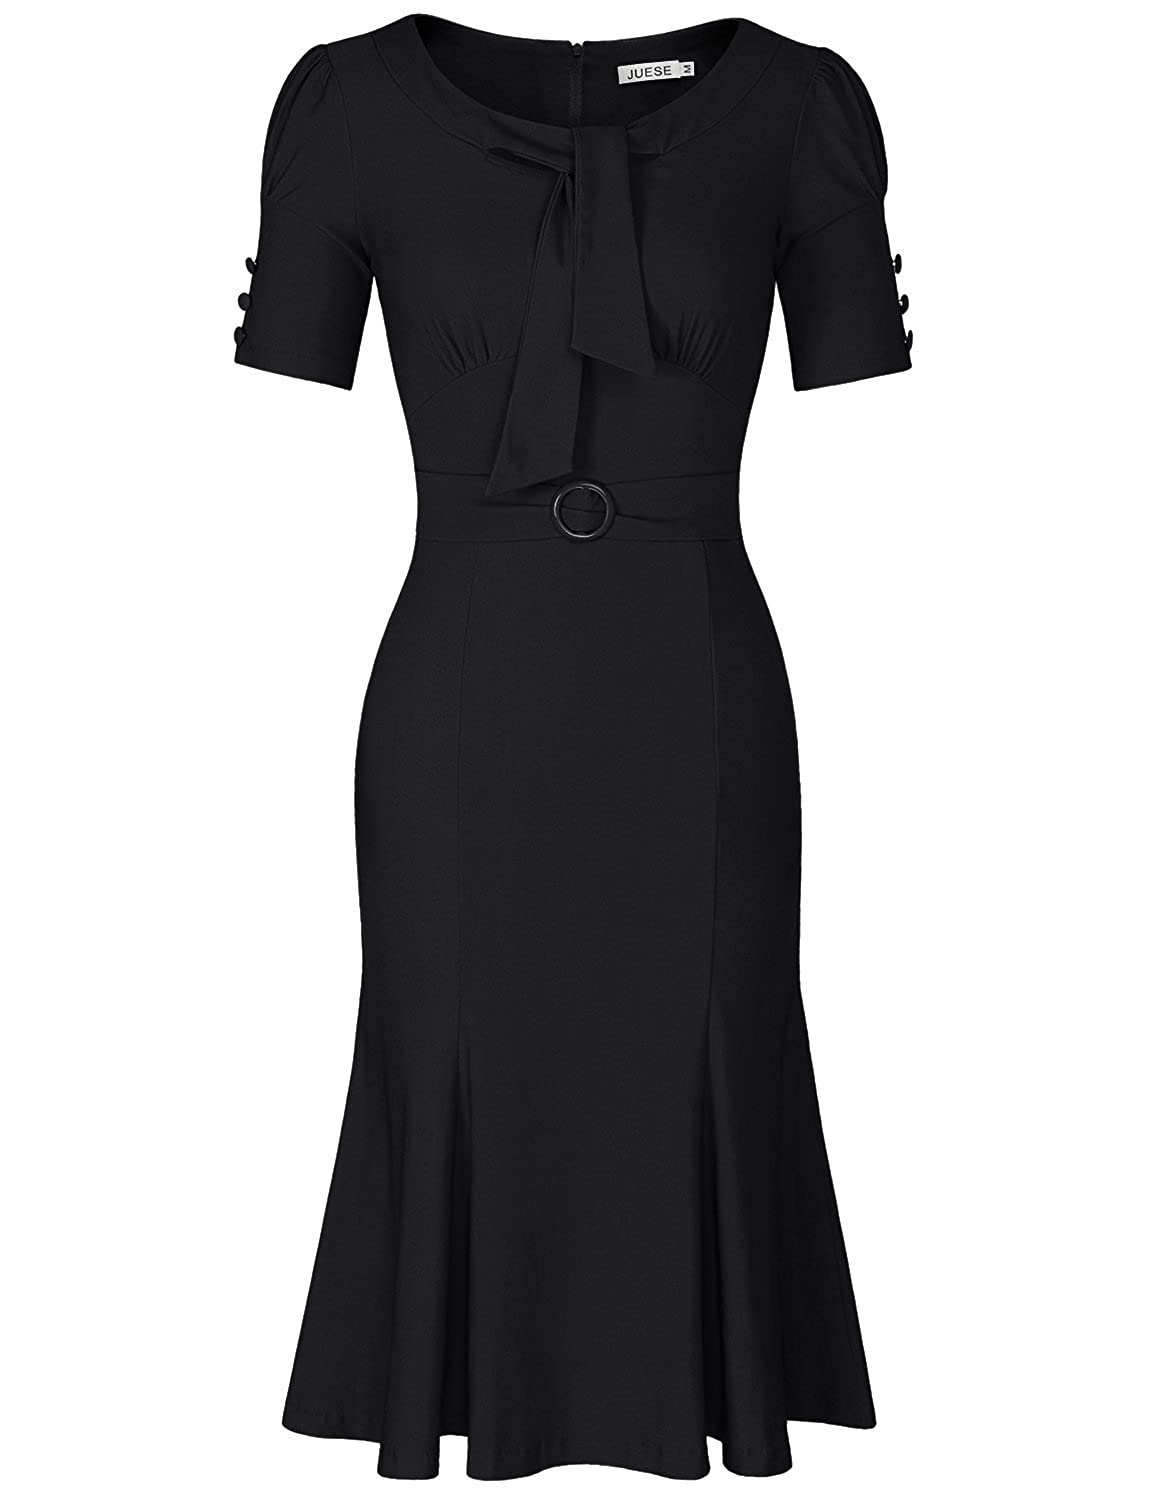 1930s Day Dresses, Afternoon Dresses History Formal or Casual Party Pencil Dress $32.99 AT vintagedancer.com